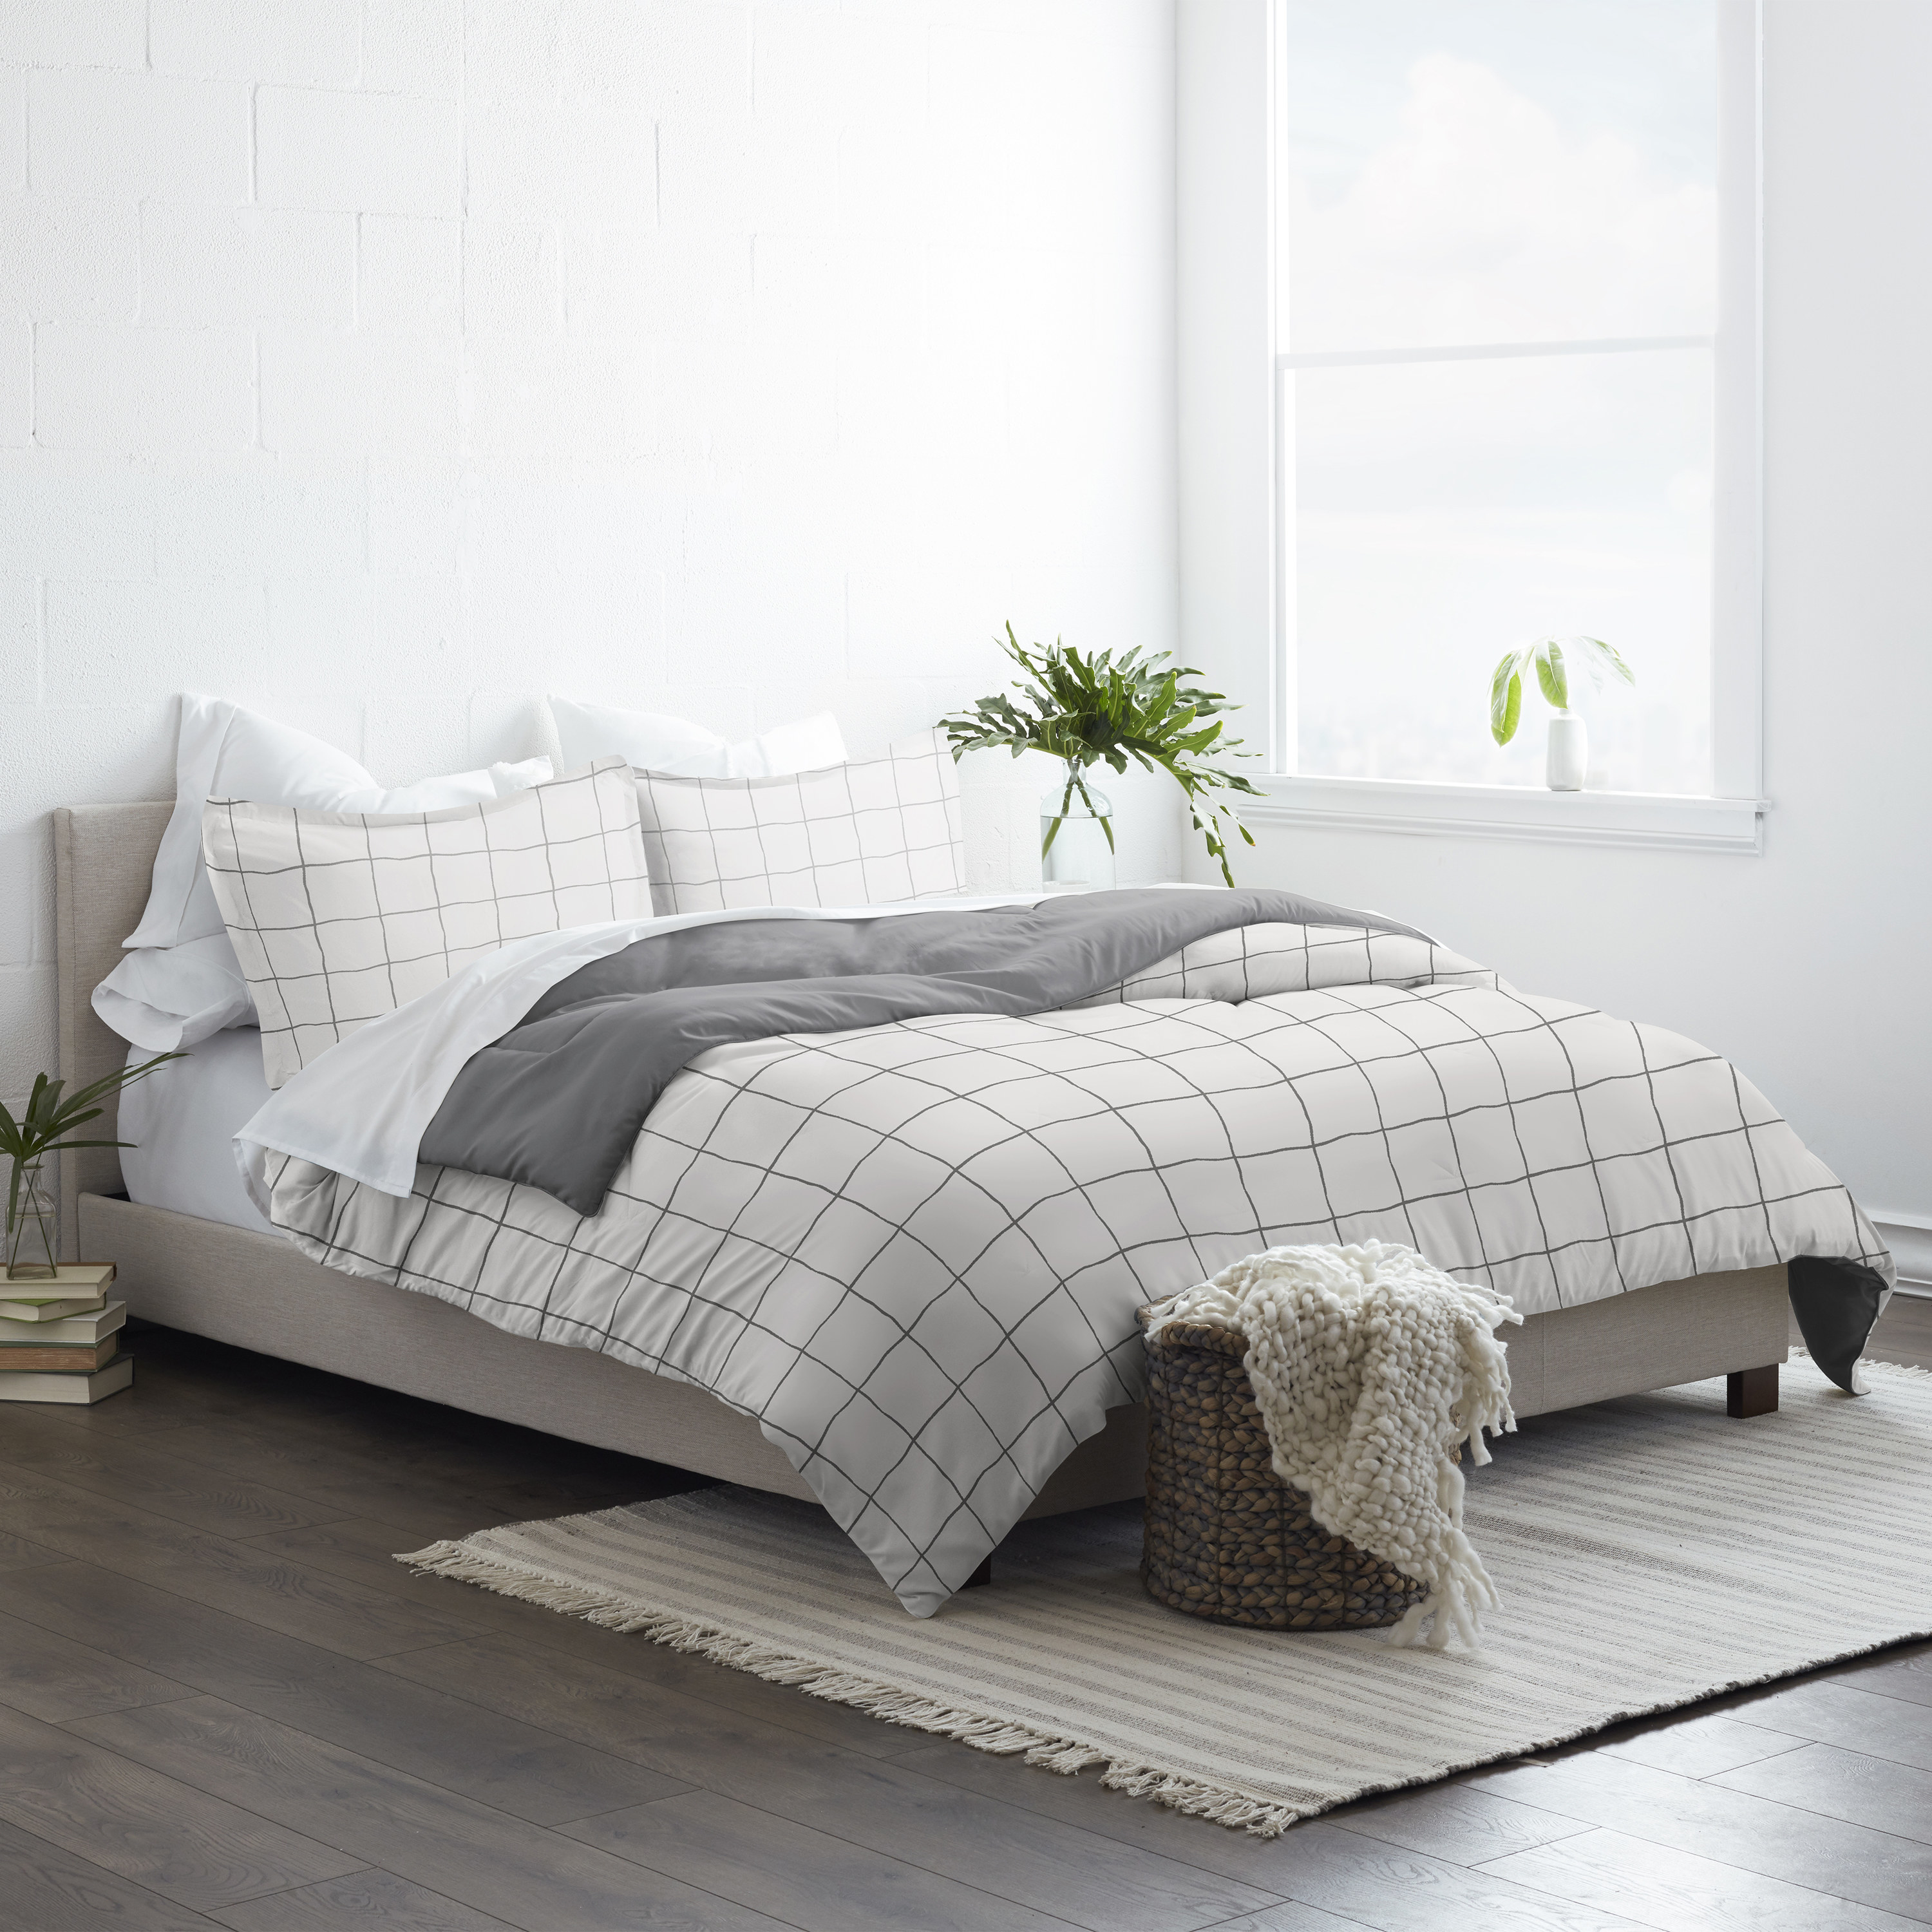 the black and white striped comforter